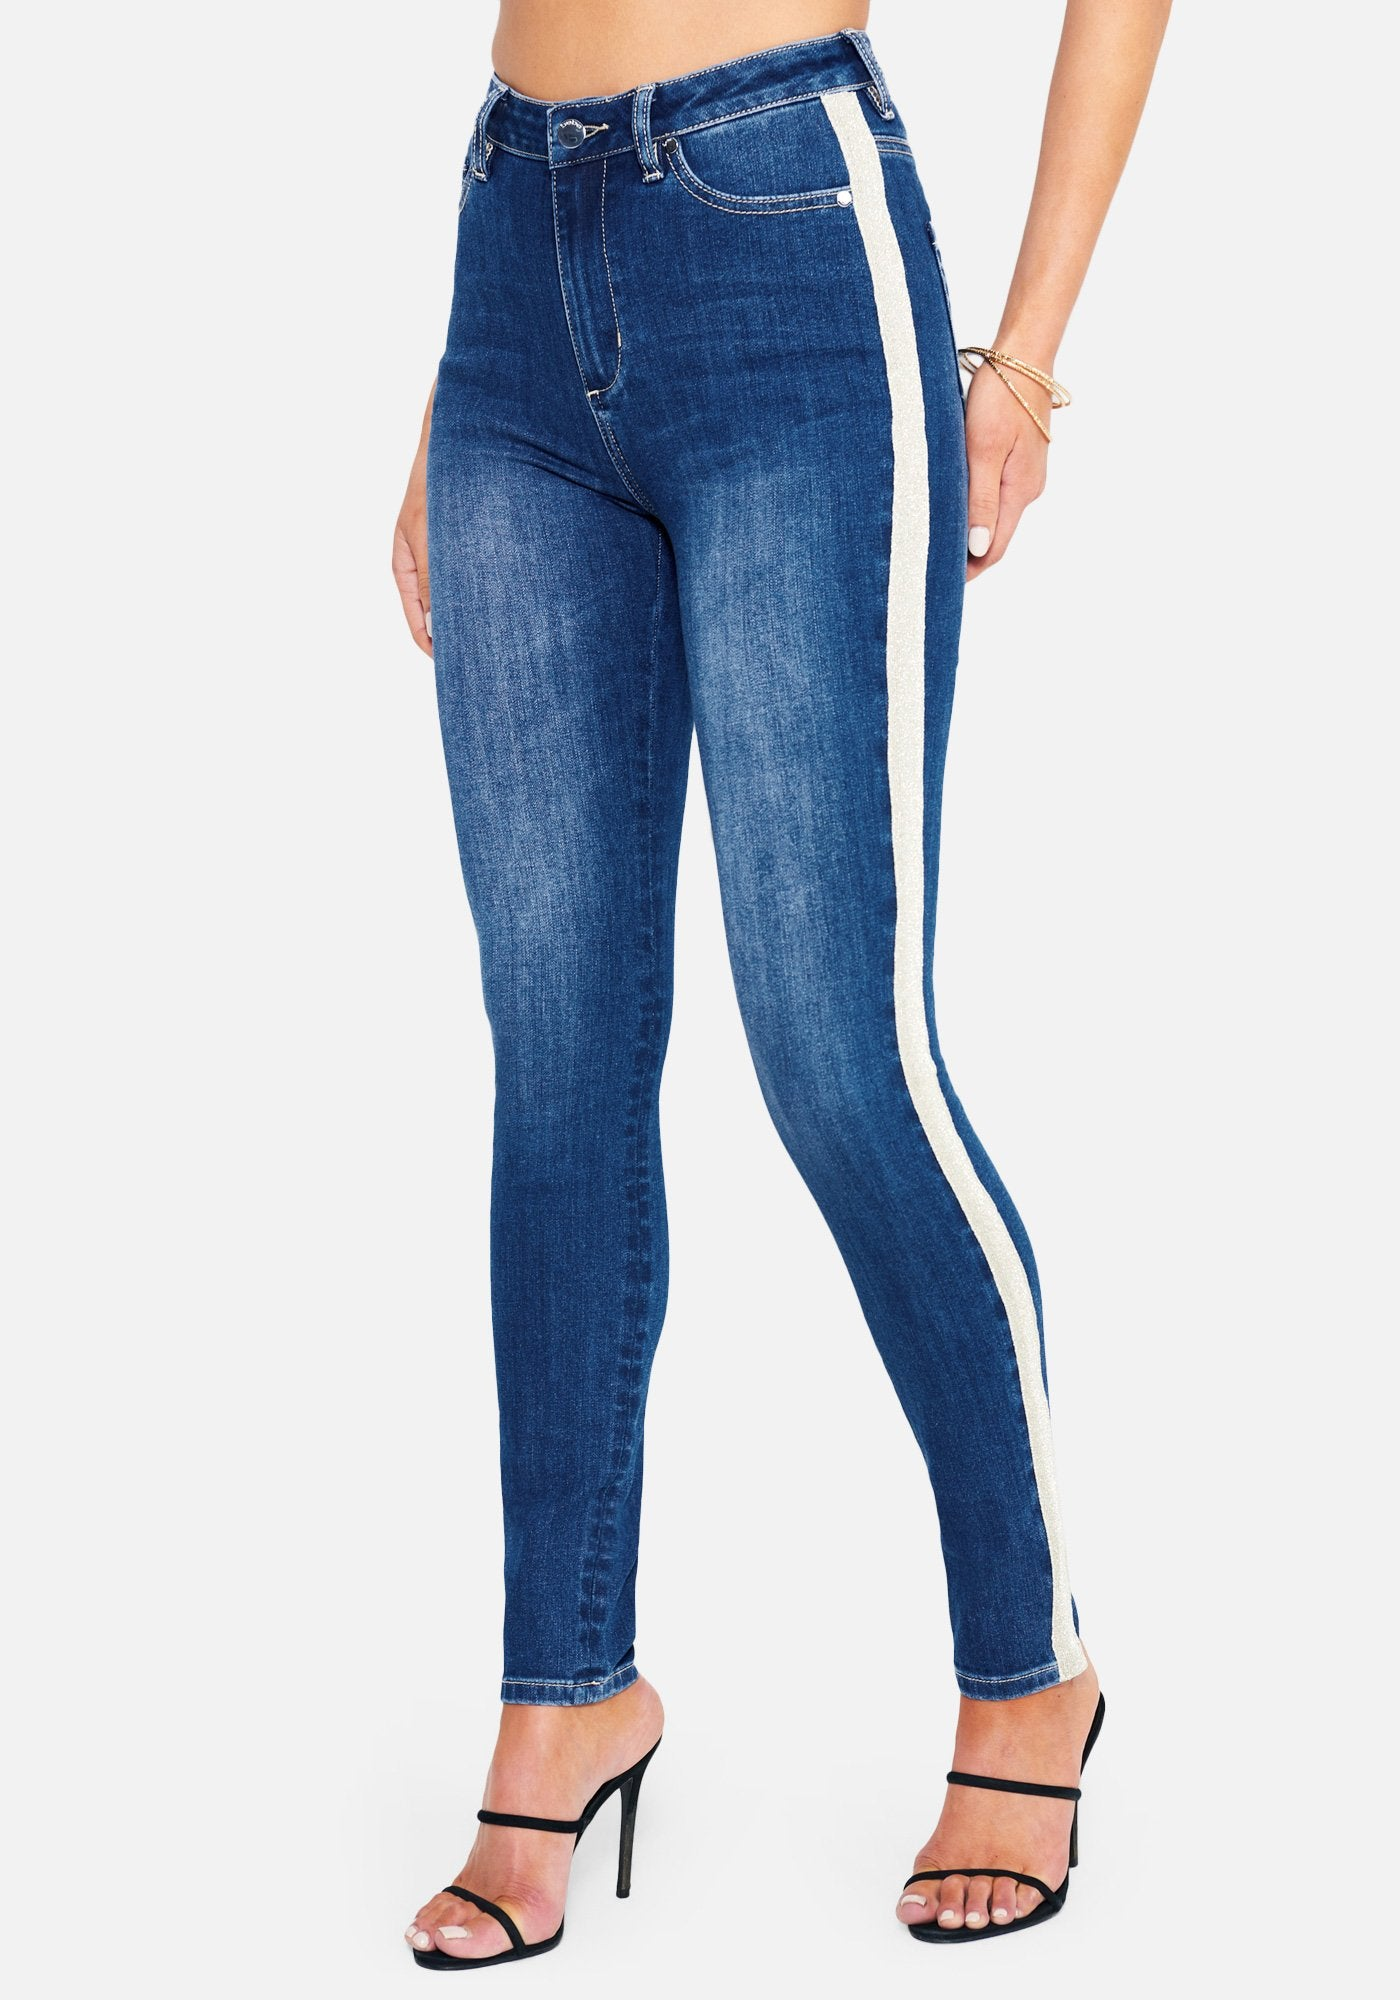 Bebe Women's Stripe Side Detail Skinny Jeans, Size 25 in MEDIUM INDIGO WASH Cotton/Spandex/Viscose